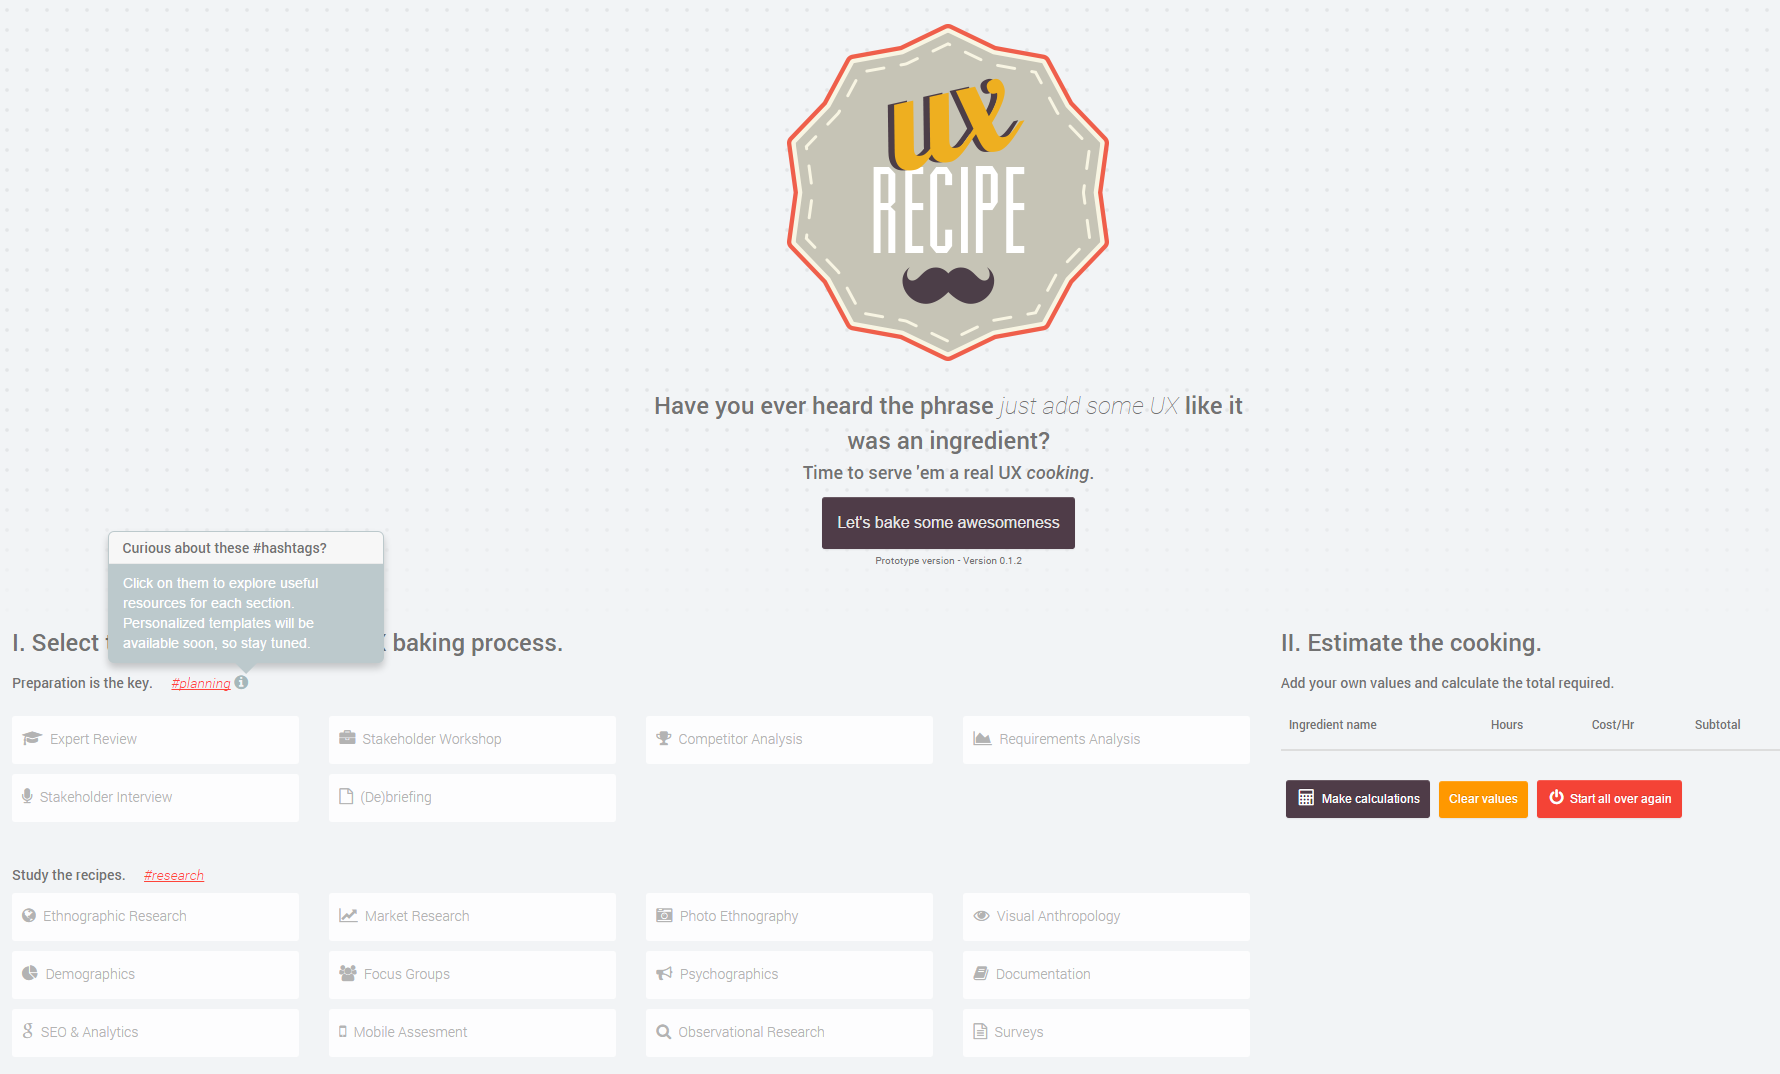 UX Recipe Screenshot